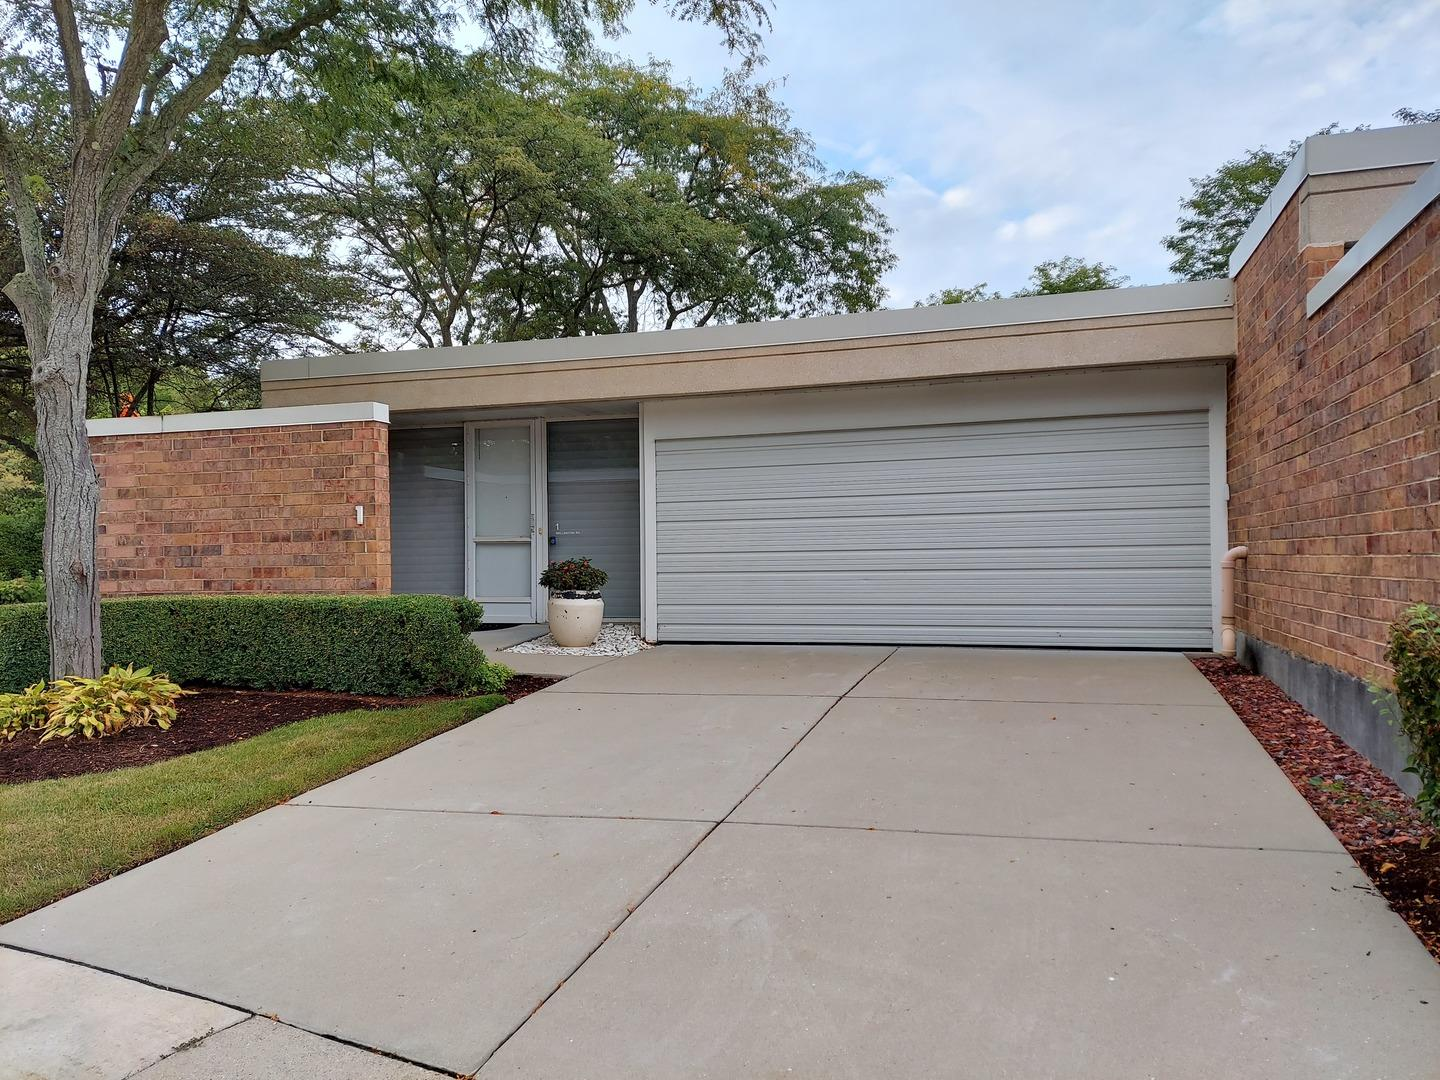 1 Wellington Road, Northbrook, IL 60062 - #: 10841905